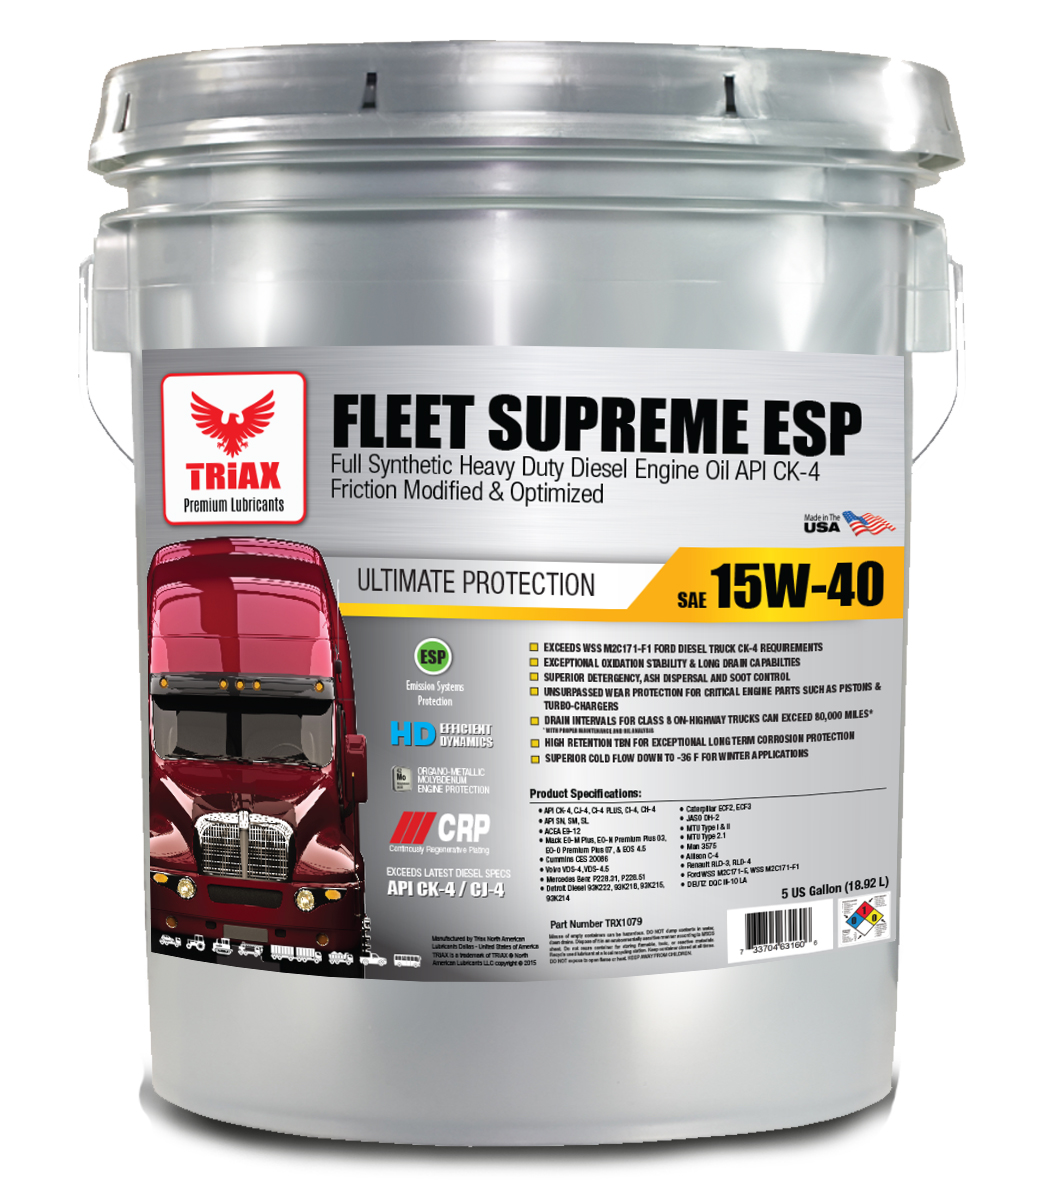 TRIAX Fleet Supreme ESP 15W-40 Full Synthetic (Euro 5) cu Molybden